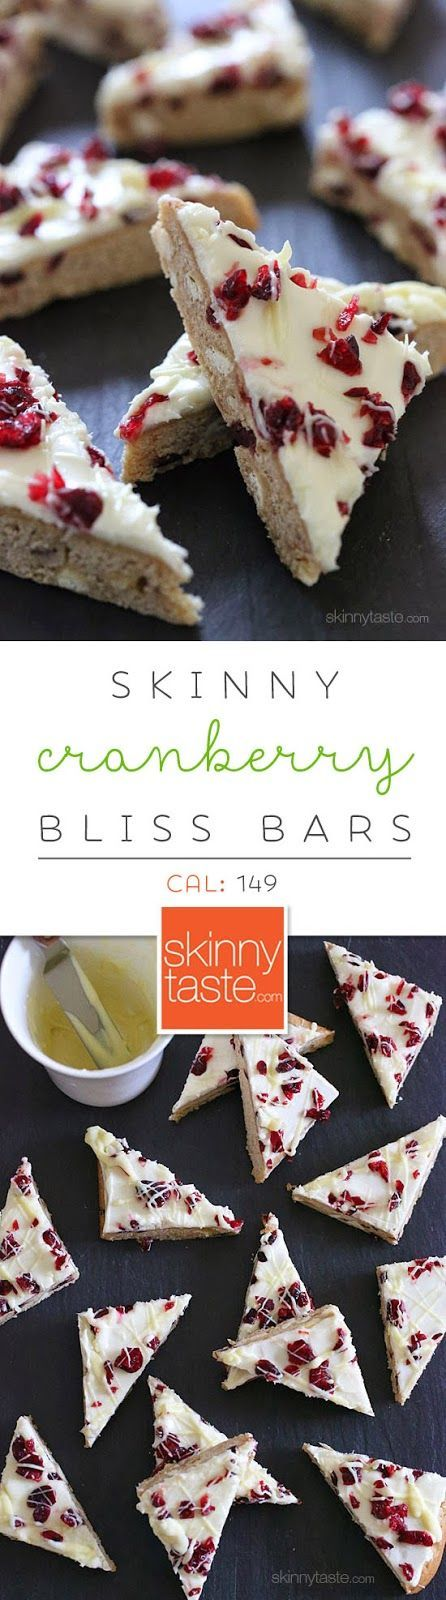 Skinny Cranberry Bliss Bars – SO GOOD, a copycat of Starbucks bars with a fraction of the calories!